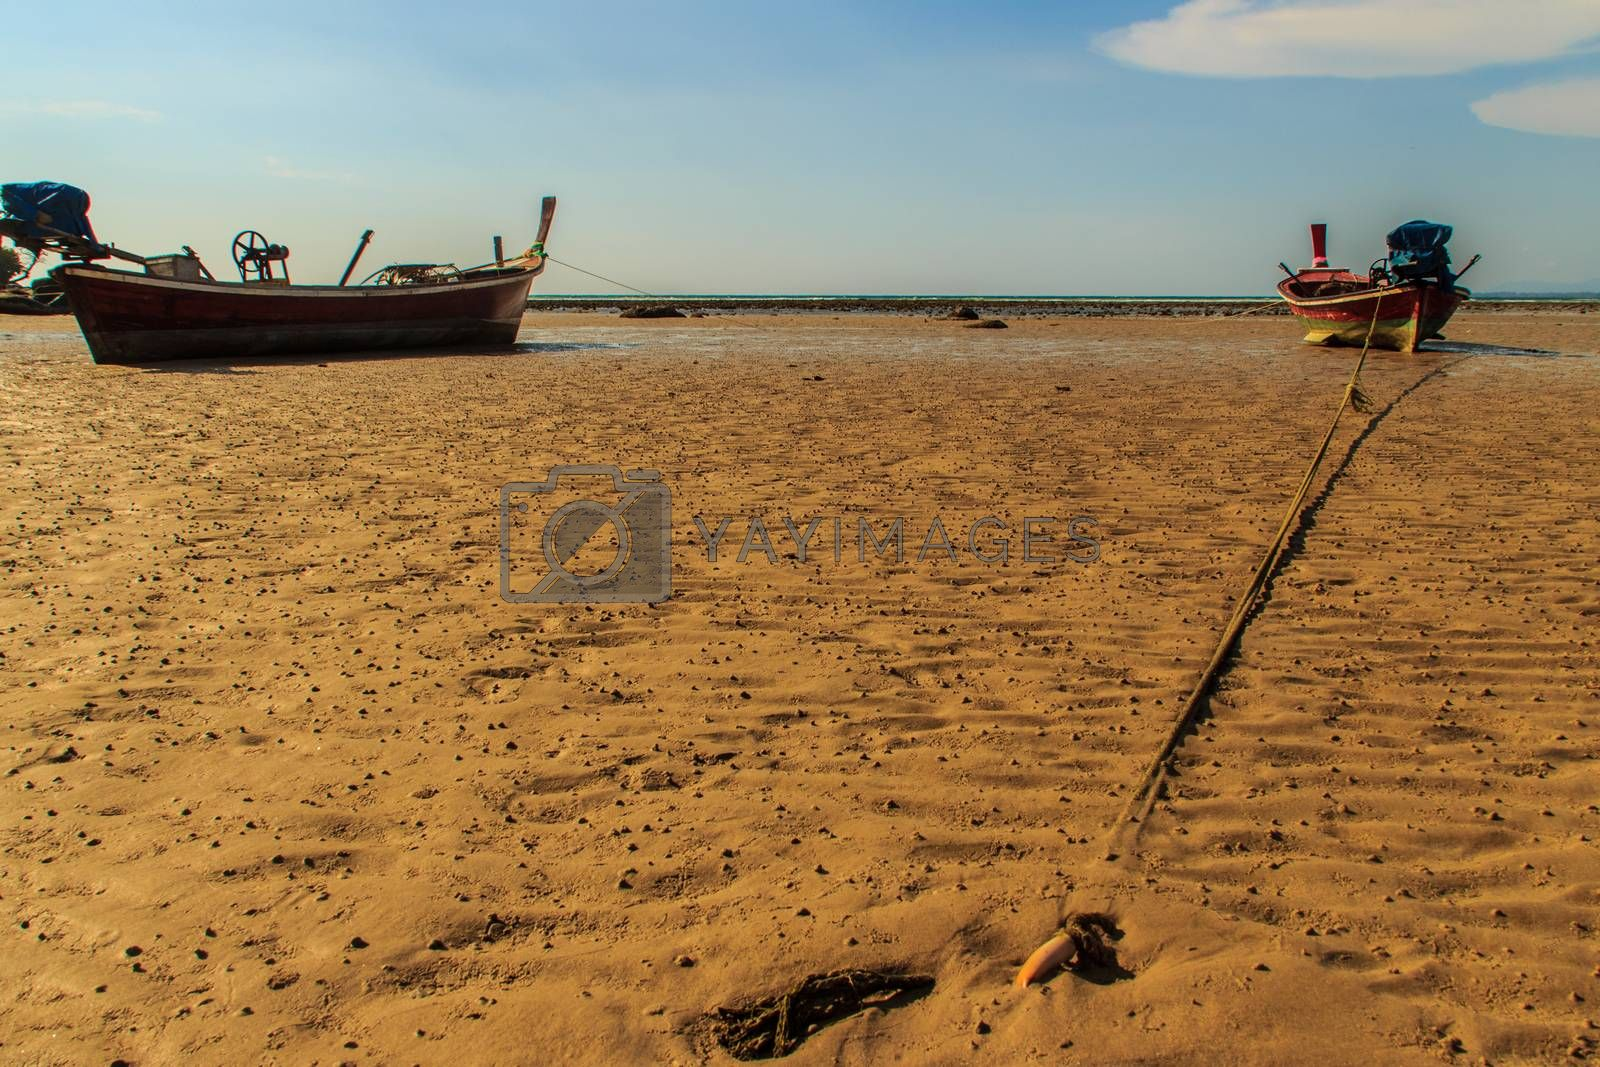 Traditional Thai wooden longtail boats (Rua Hang Yao) moored on the sand at small pier with blue sky and small island background in Phuket, Thailand